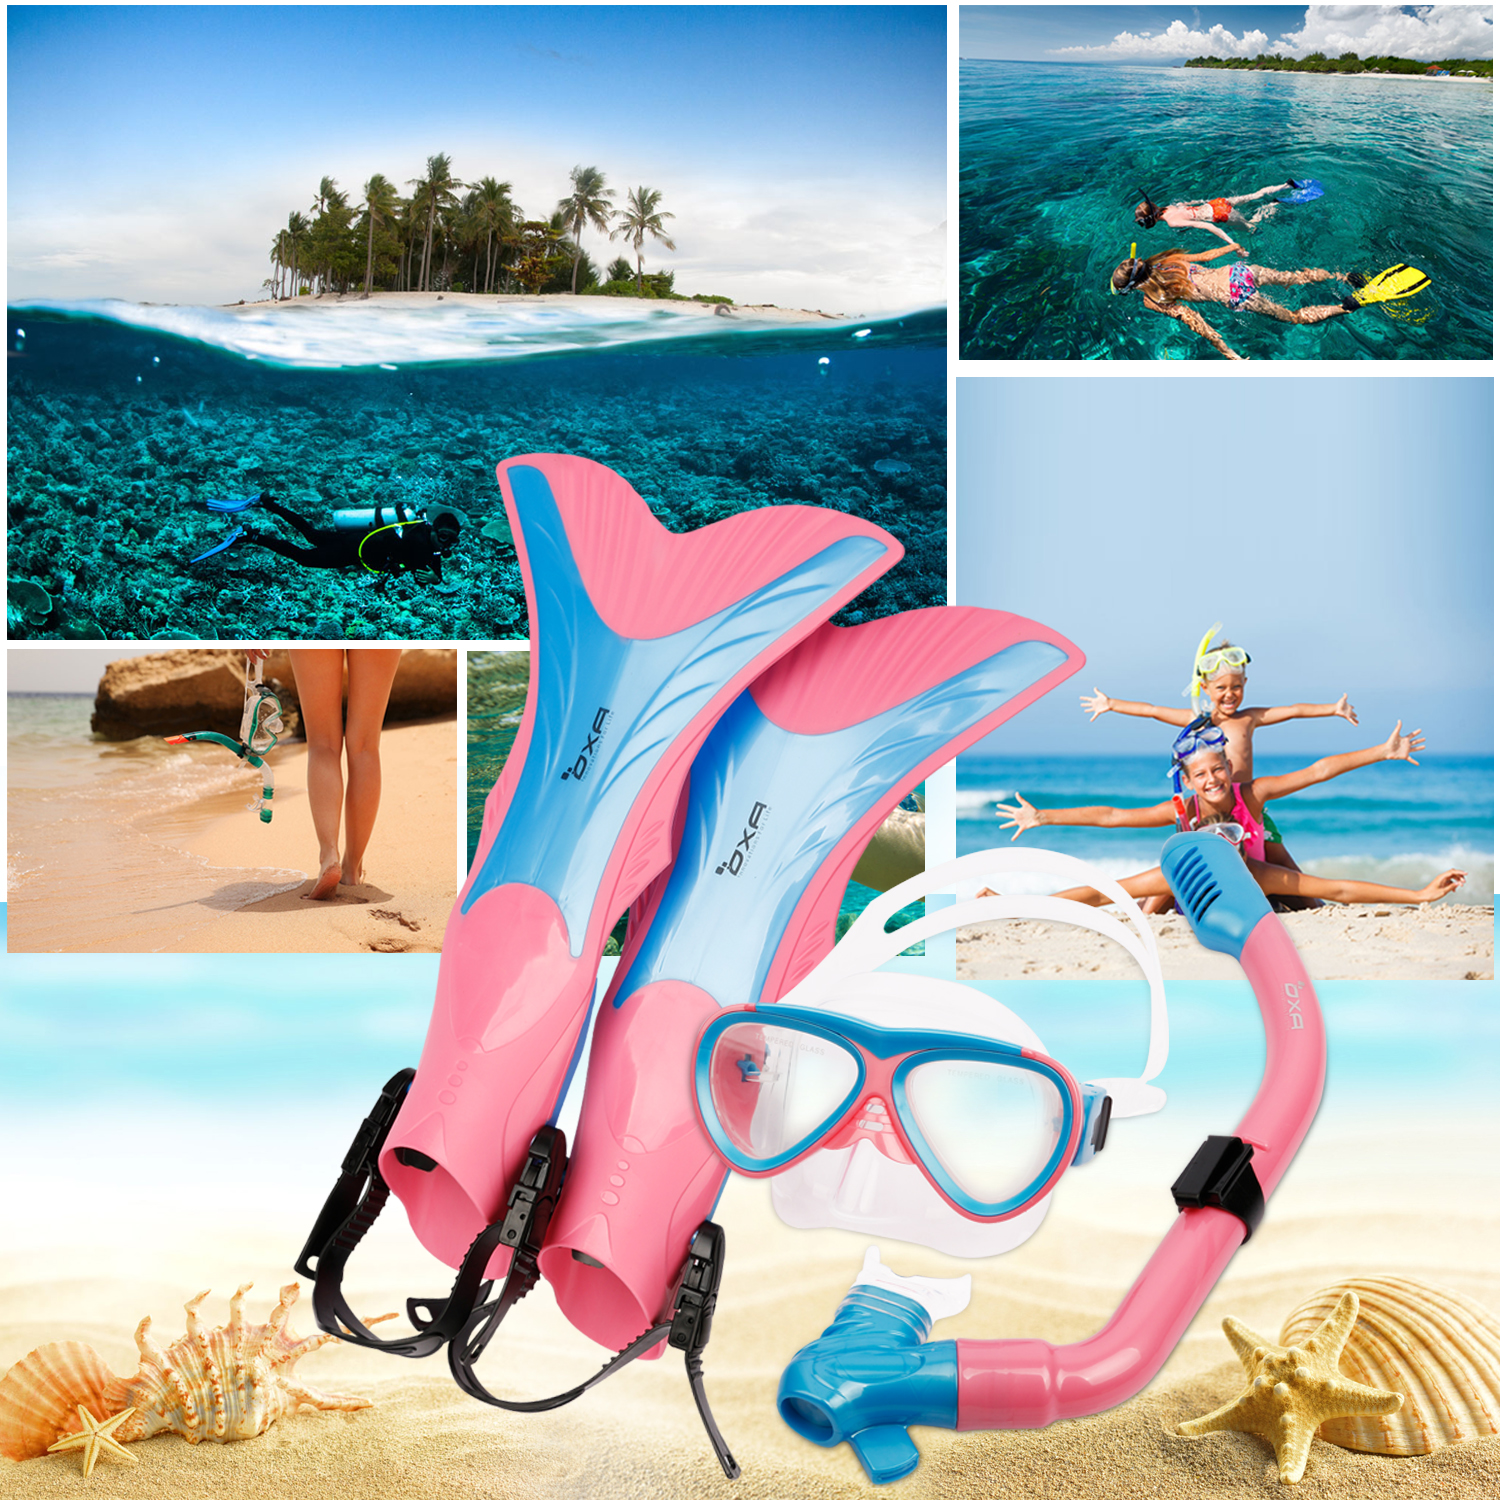 OXA Kids Snorkel Swimming Goggles & Diving Mask Snorkel Glasses & Flippers Set Silicone Professional Scuba Diving Equipment